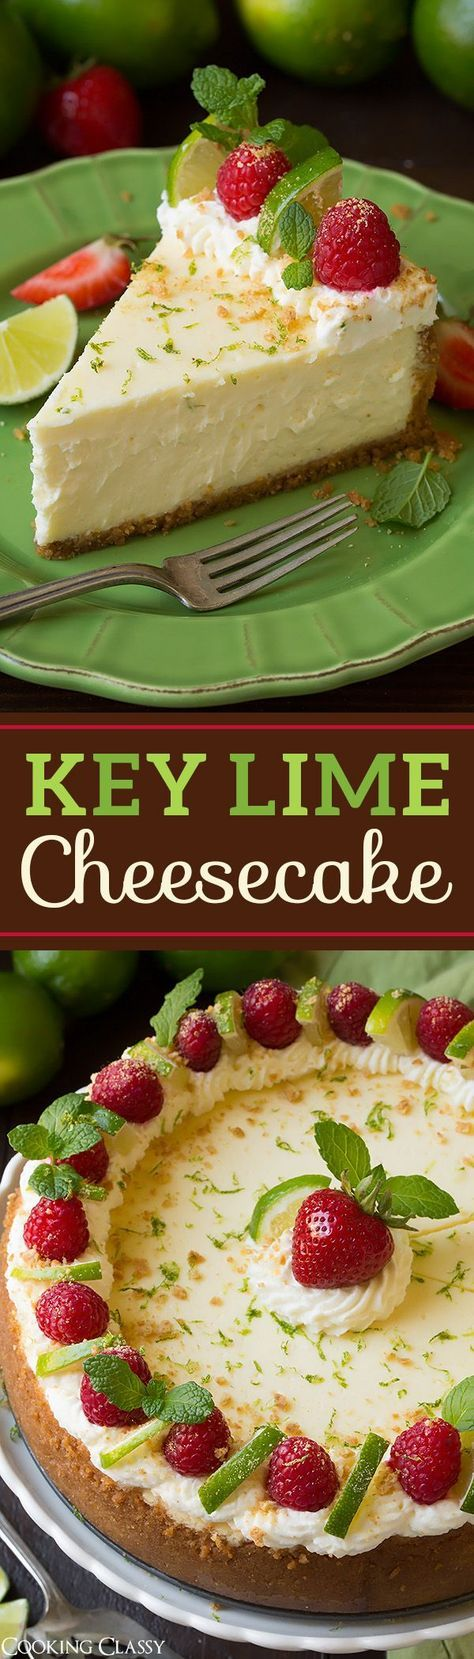 This Key Lime Cheesecake is unbelievably delicious! It's perfectly tart, perfectly sweet, perfectly tangy, perfectly creamy, perfectly luscious – it's perfectly everything!